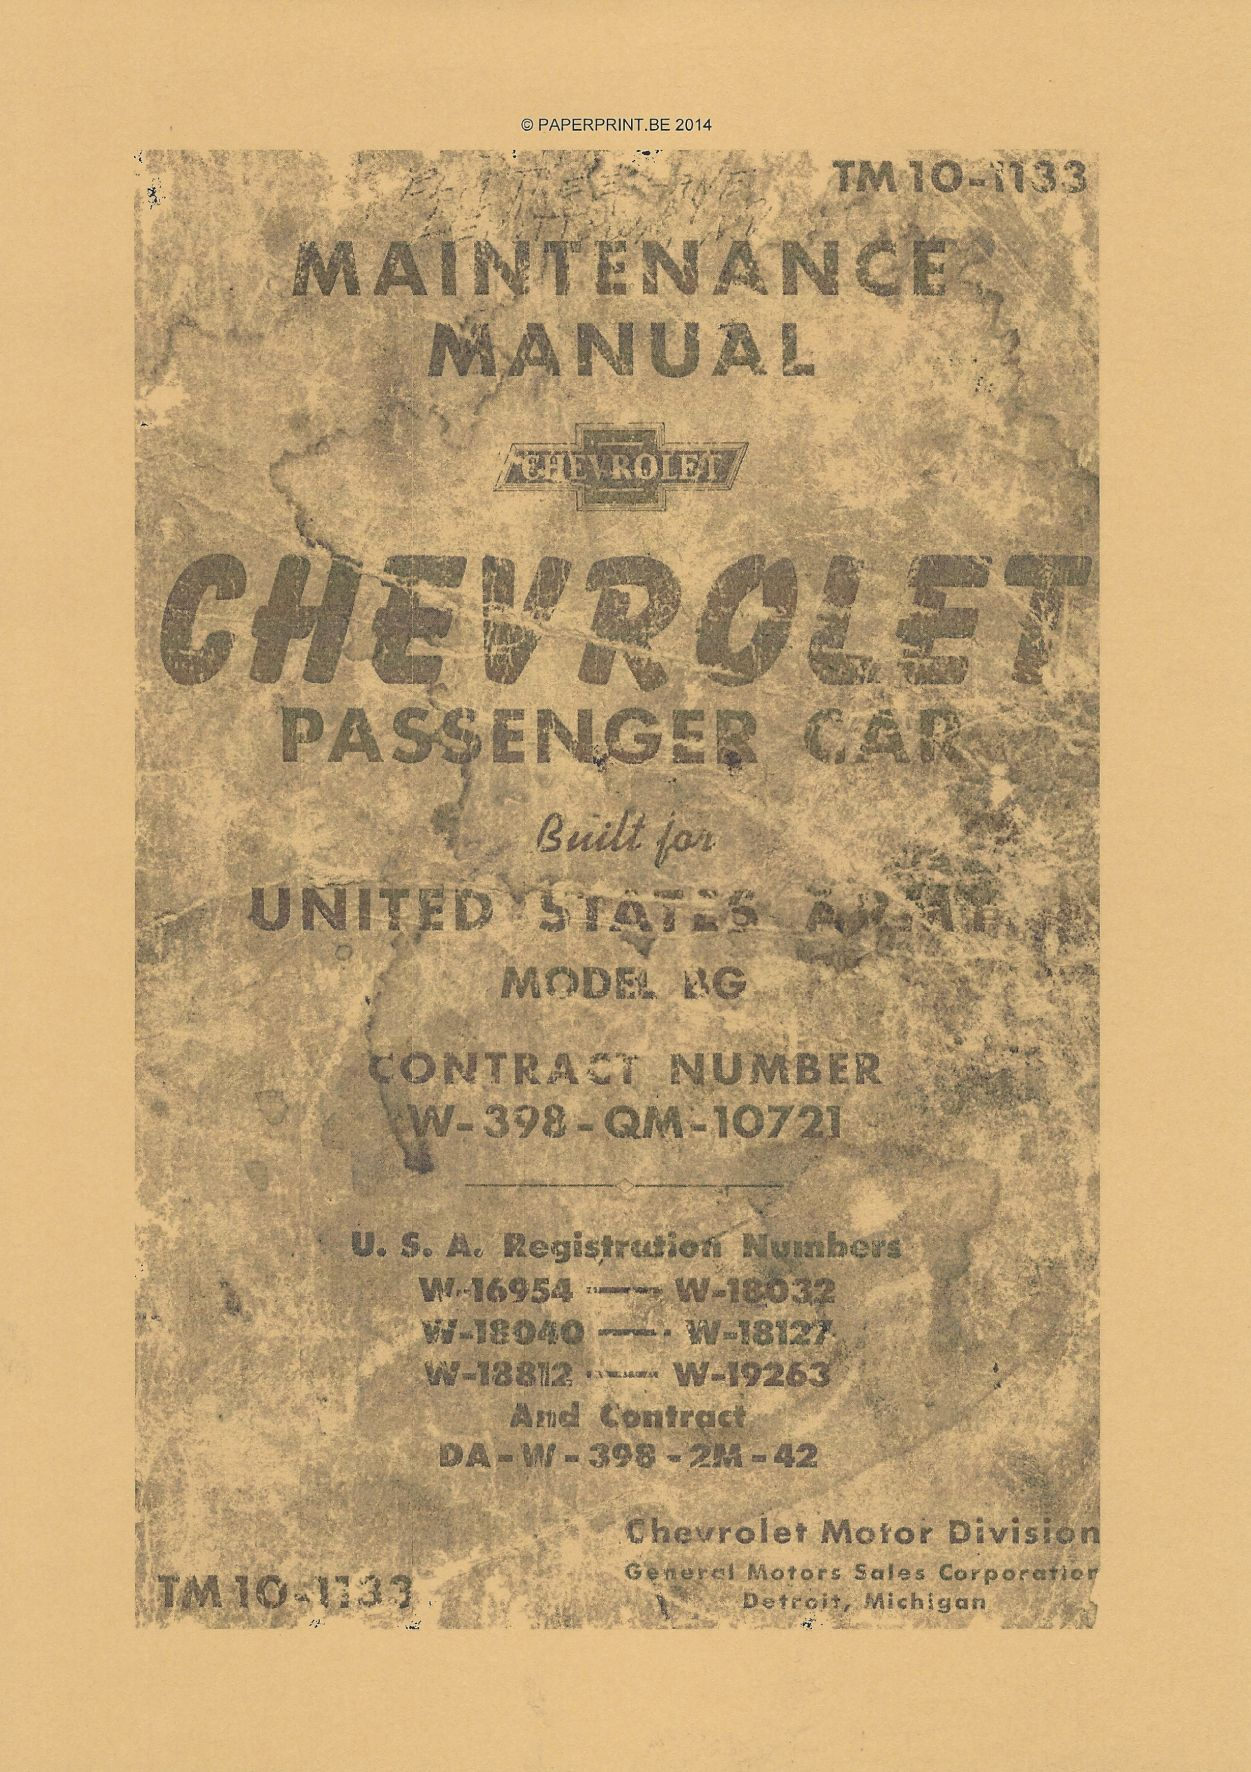 TM 10-1133 US MAINTENANCE MANUAL CHEVROLET PASSENGER CAR